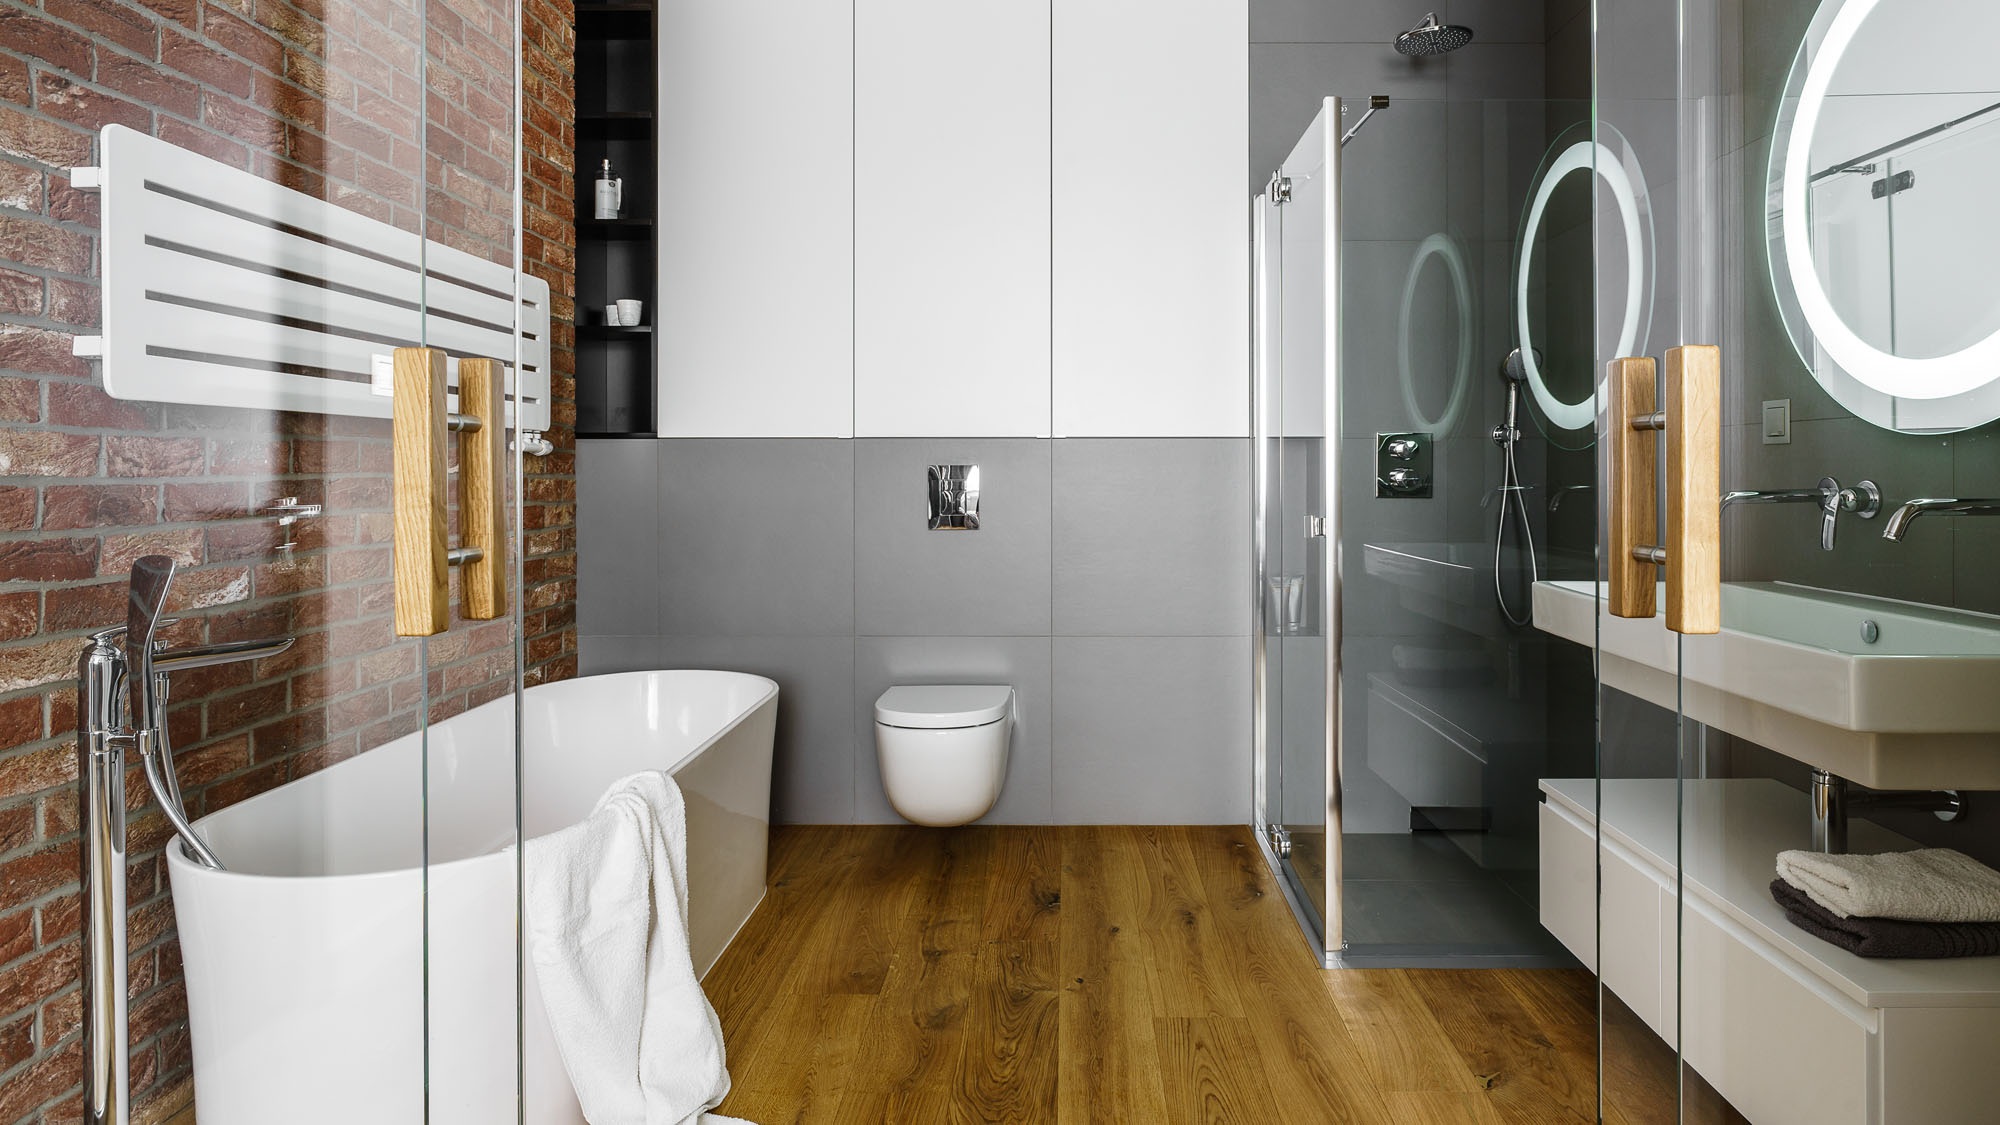 Modern Metallic, Wooden, White Theme Three Bedroom Apartment in Gdynia by Dragon Art-33